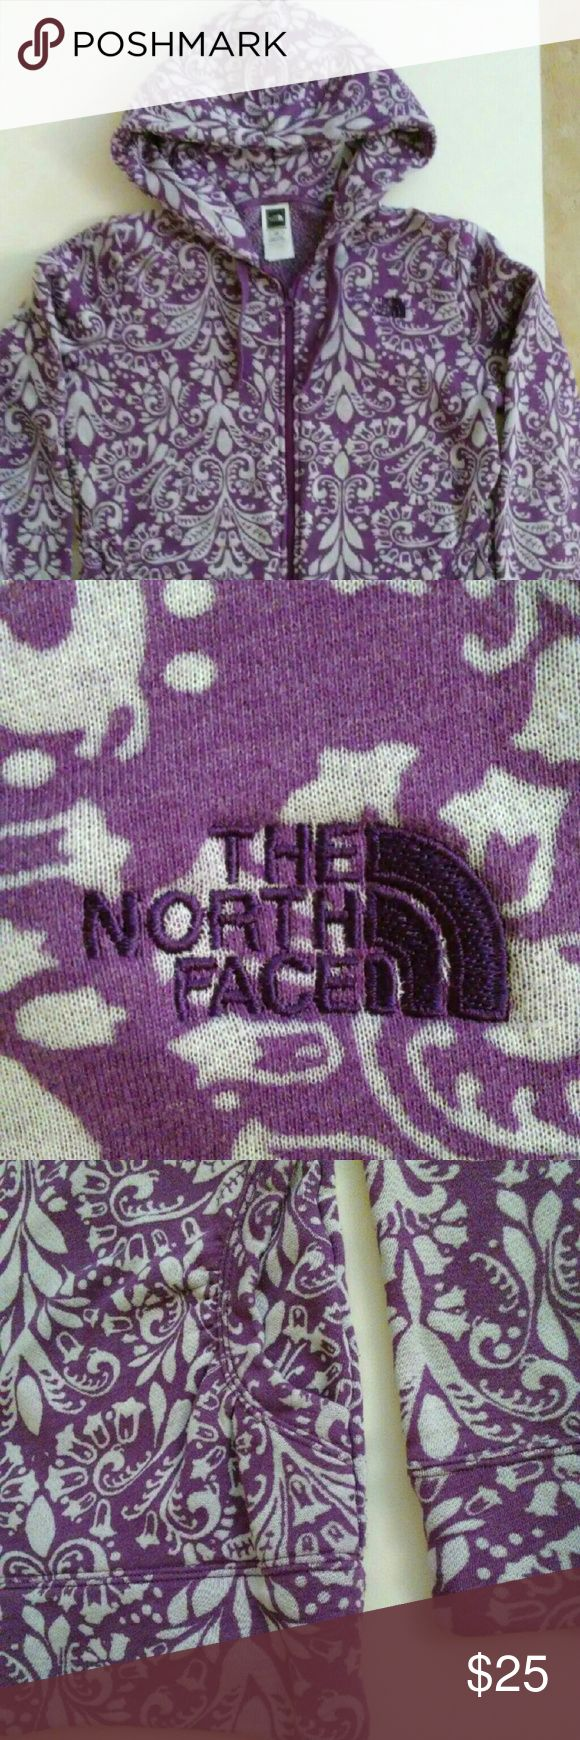 The North Face Full Zip Purple Hoodie Womens Large North Face Hoodie with?Purple Floral design  Size Large?  19? chest? 26? length? 20? sleeve The North Face Tops Sweatshirts & Hoodies